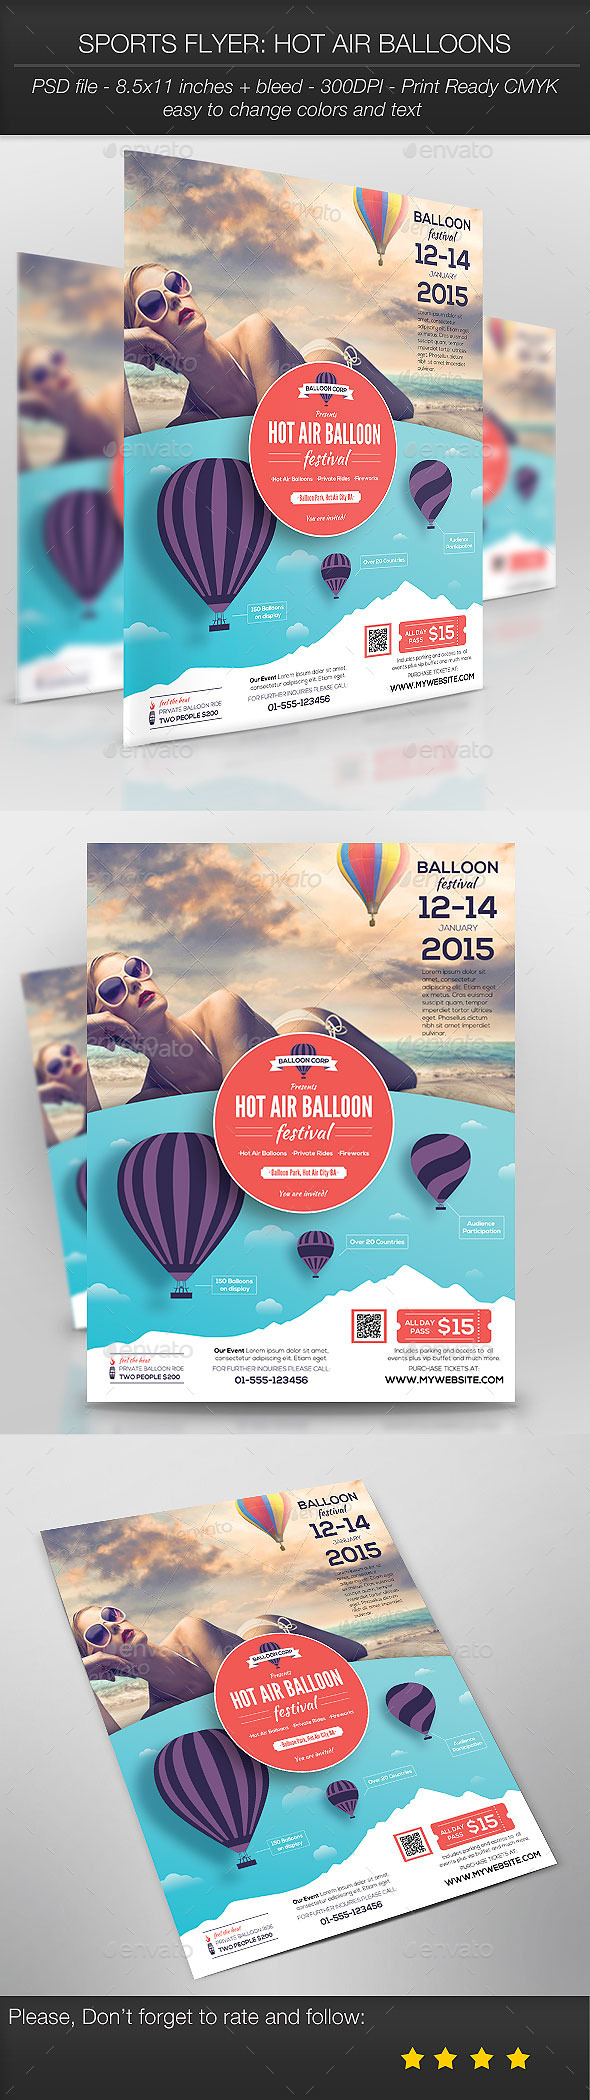 Sports Flyer: Hot Air Balloons - Sports Events